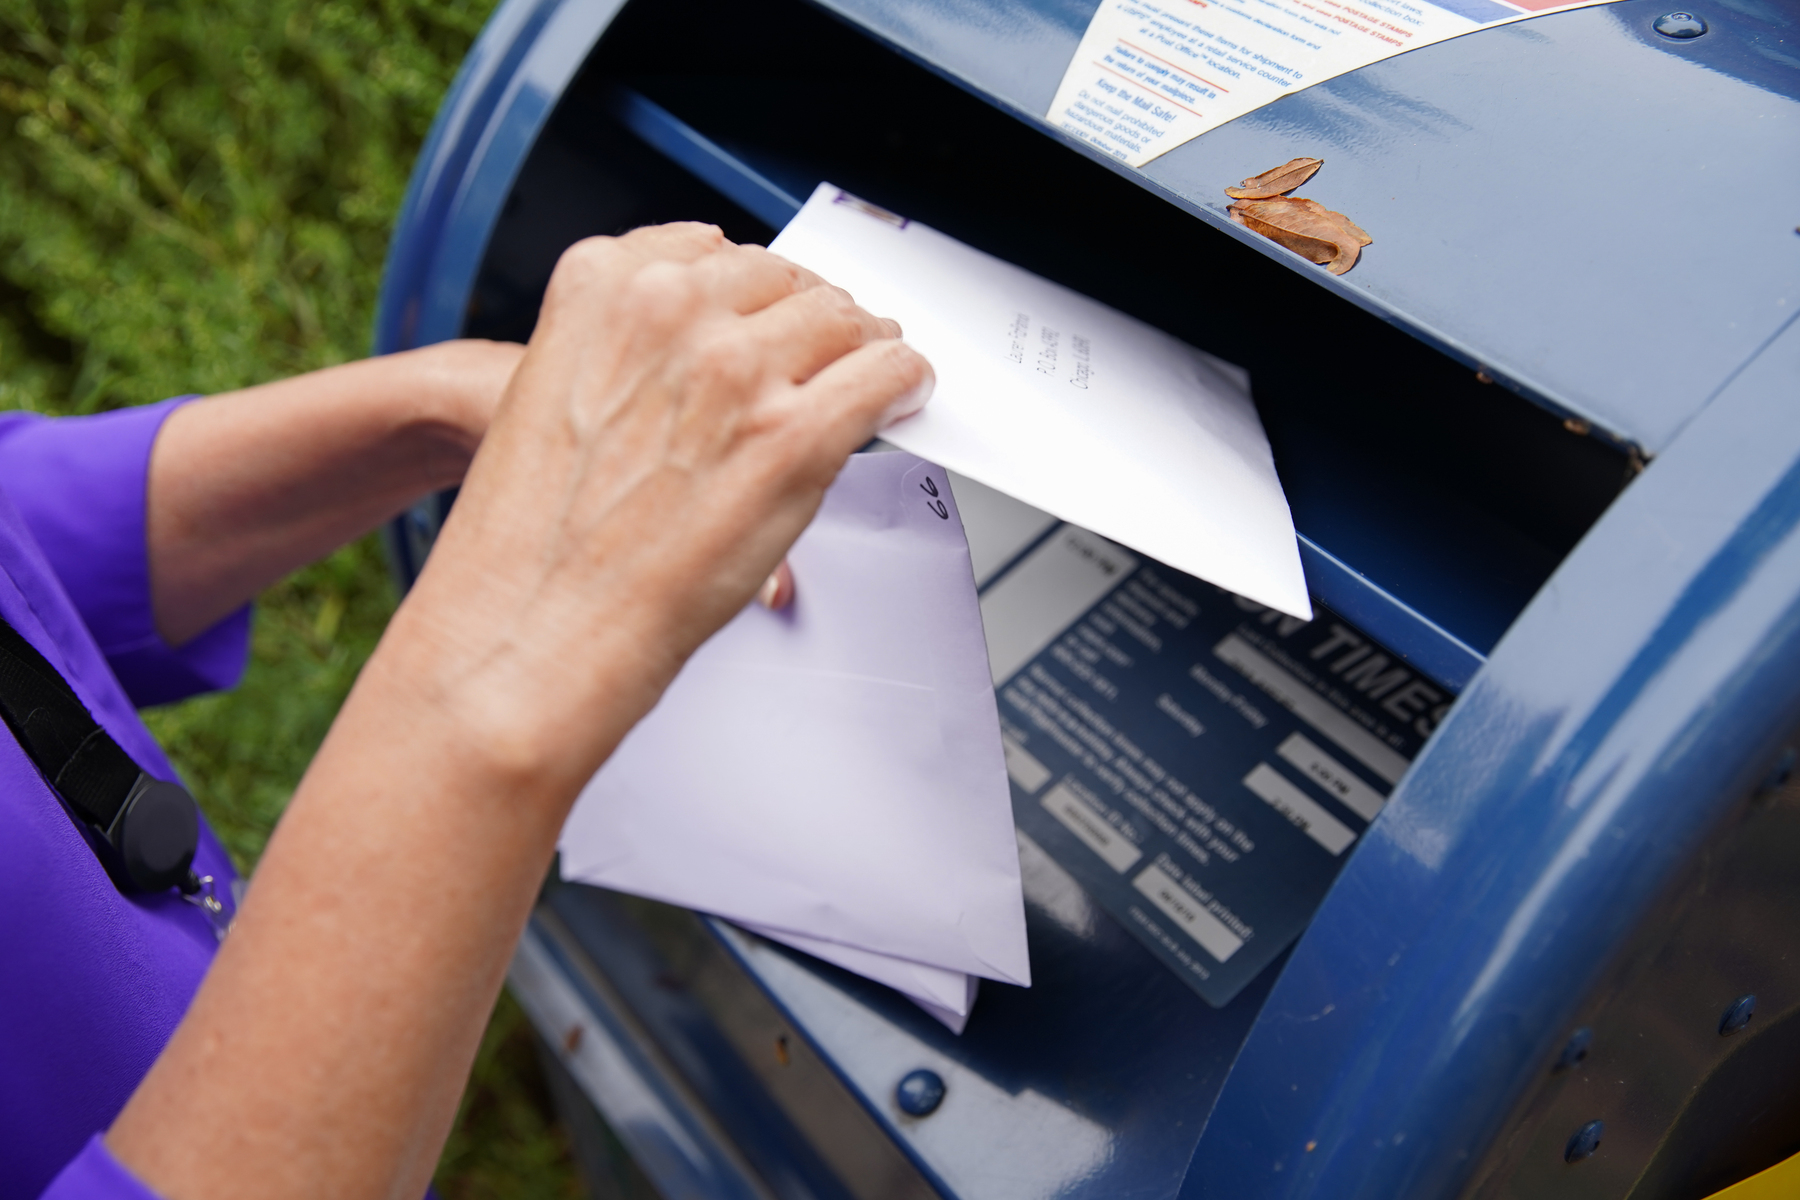 Sun-Times reporter Stephanie Zimmermann drops off an envelope in a mailbox at East 57th Street and South Kimbark Avenue as part of the test-mailing.